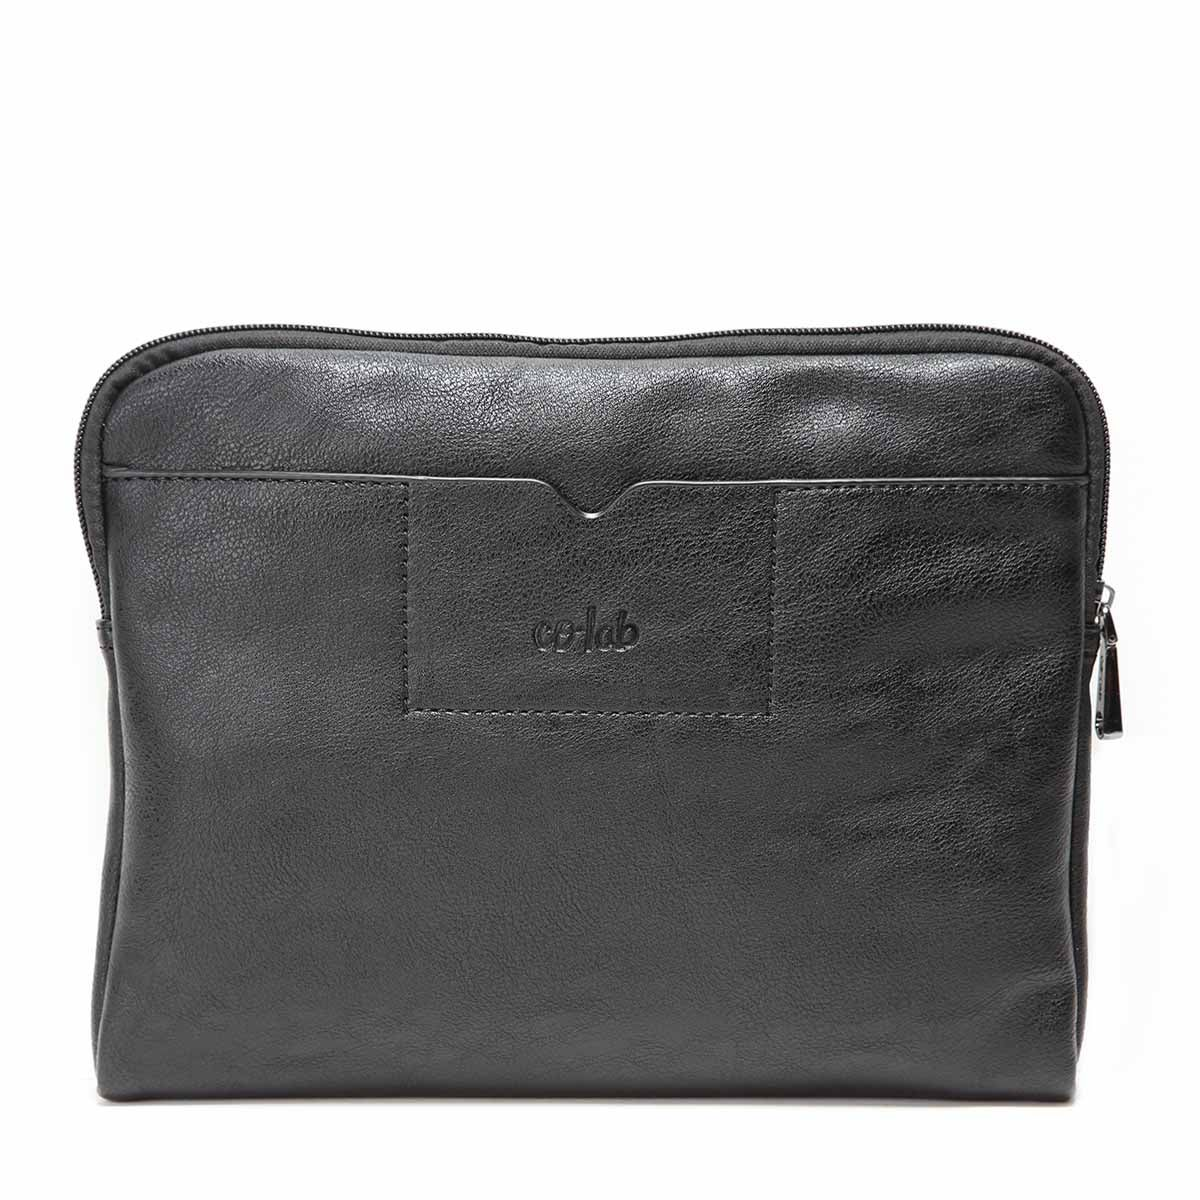 Unisex black smooth manmade Tablet Case